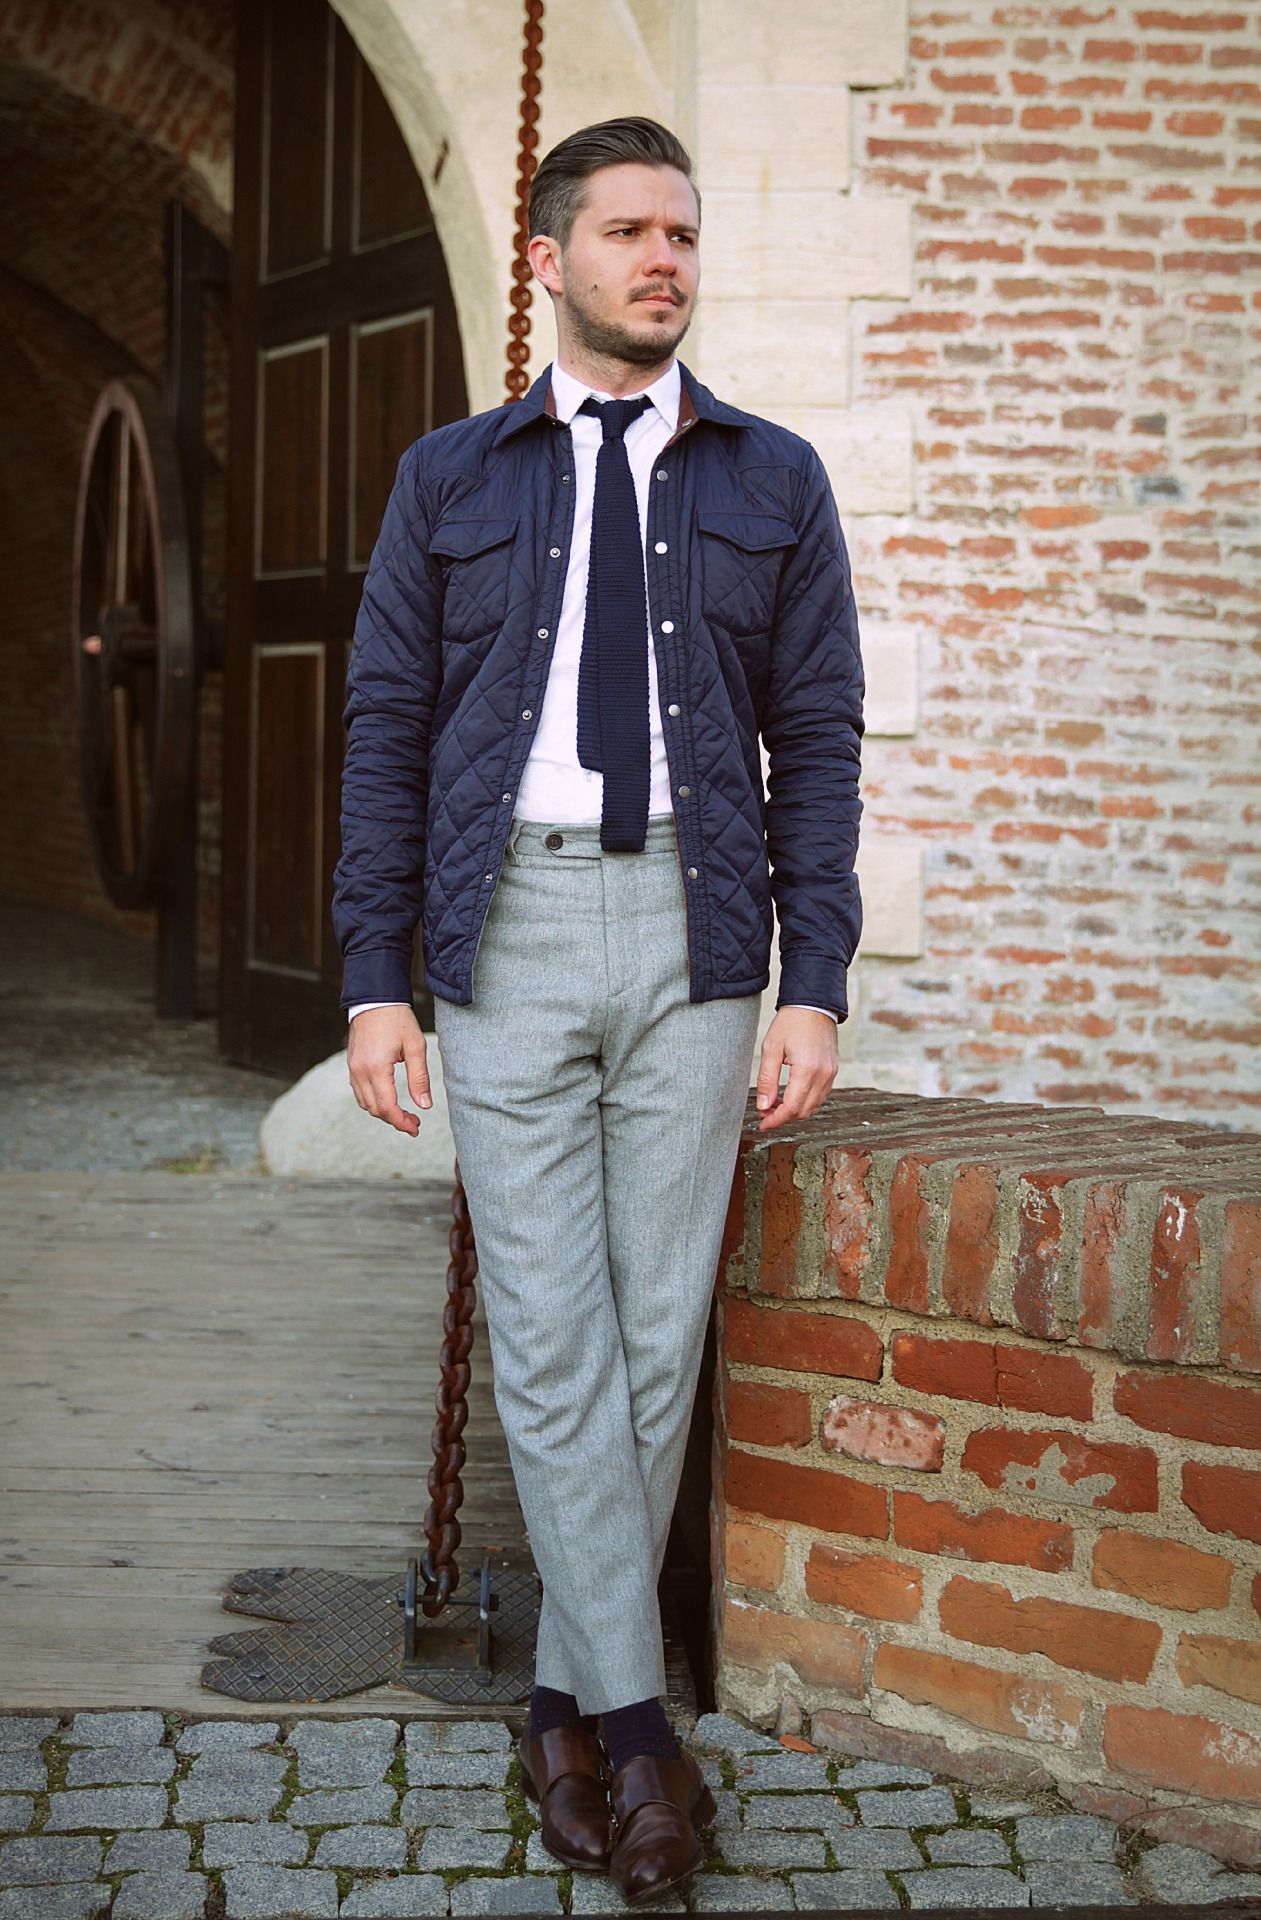 c21e3153 Trousers: H&M Shirt: Zara Tie: Zara Jacket: Zara Shoes: Zara FOLLOW :  Guidomaggi Shoes Pinterest | Guidomaggi Shoes Instagram MenStyle1 Facebook  | MenStyle1 ...